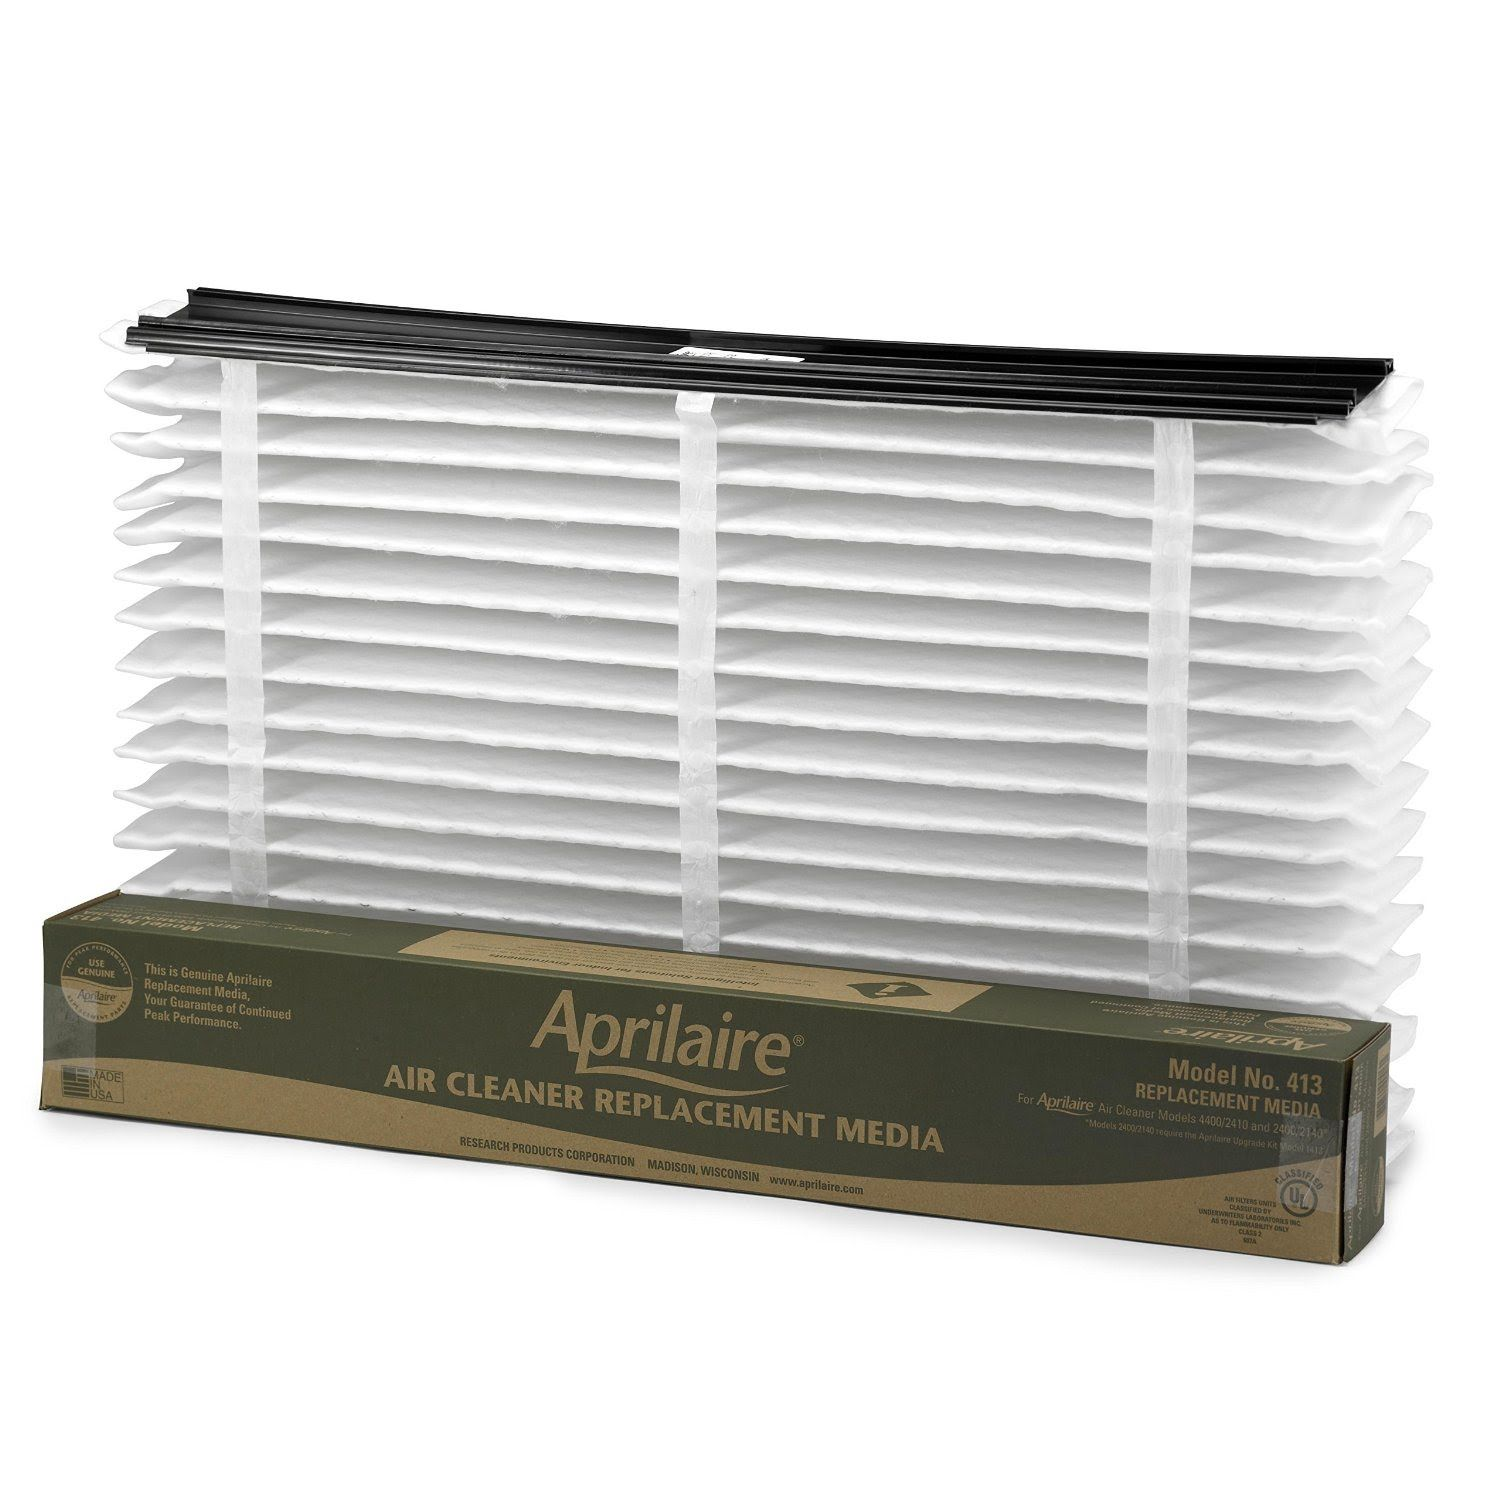 Aprilaire 413 Replacement Filter, Works with Model 4400